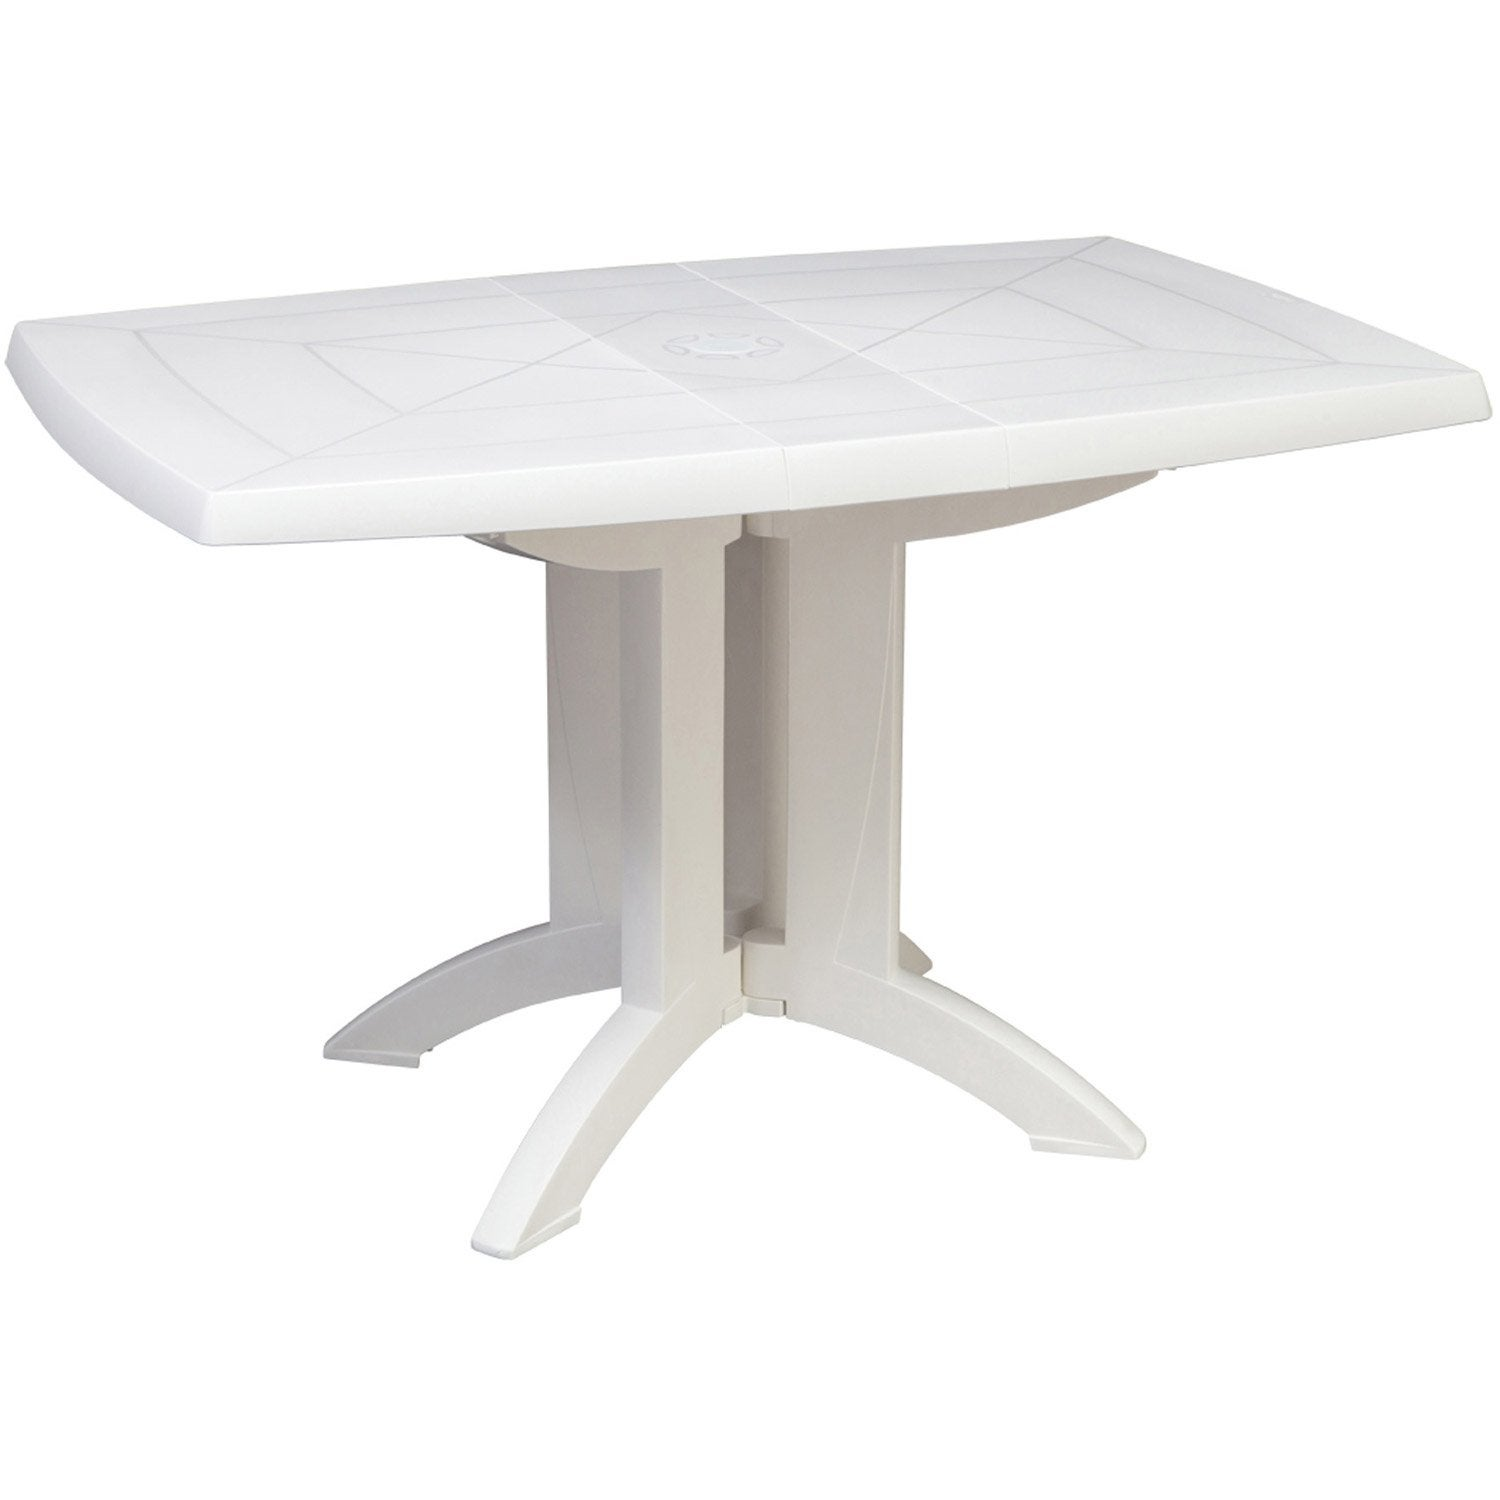 Table de jardin grosfillex v ga rectangulaire blanc 4 for Table de jardin ronde en resine blanche